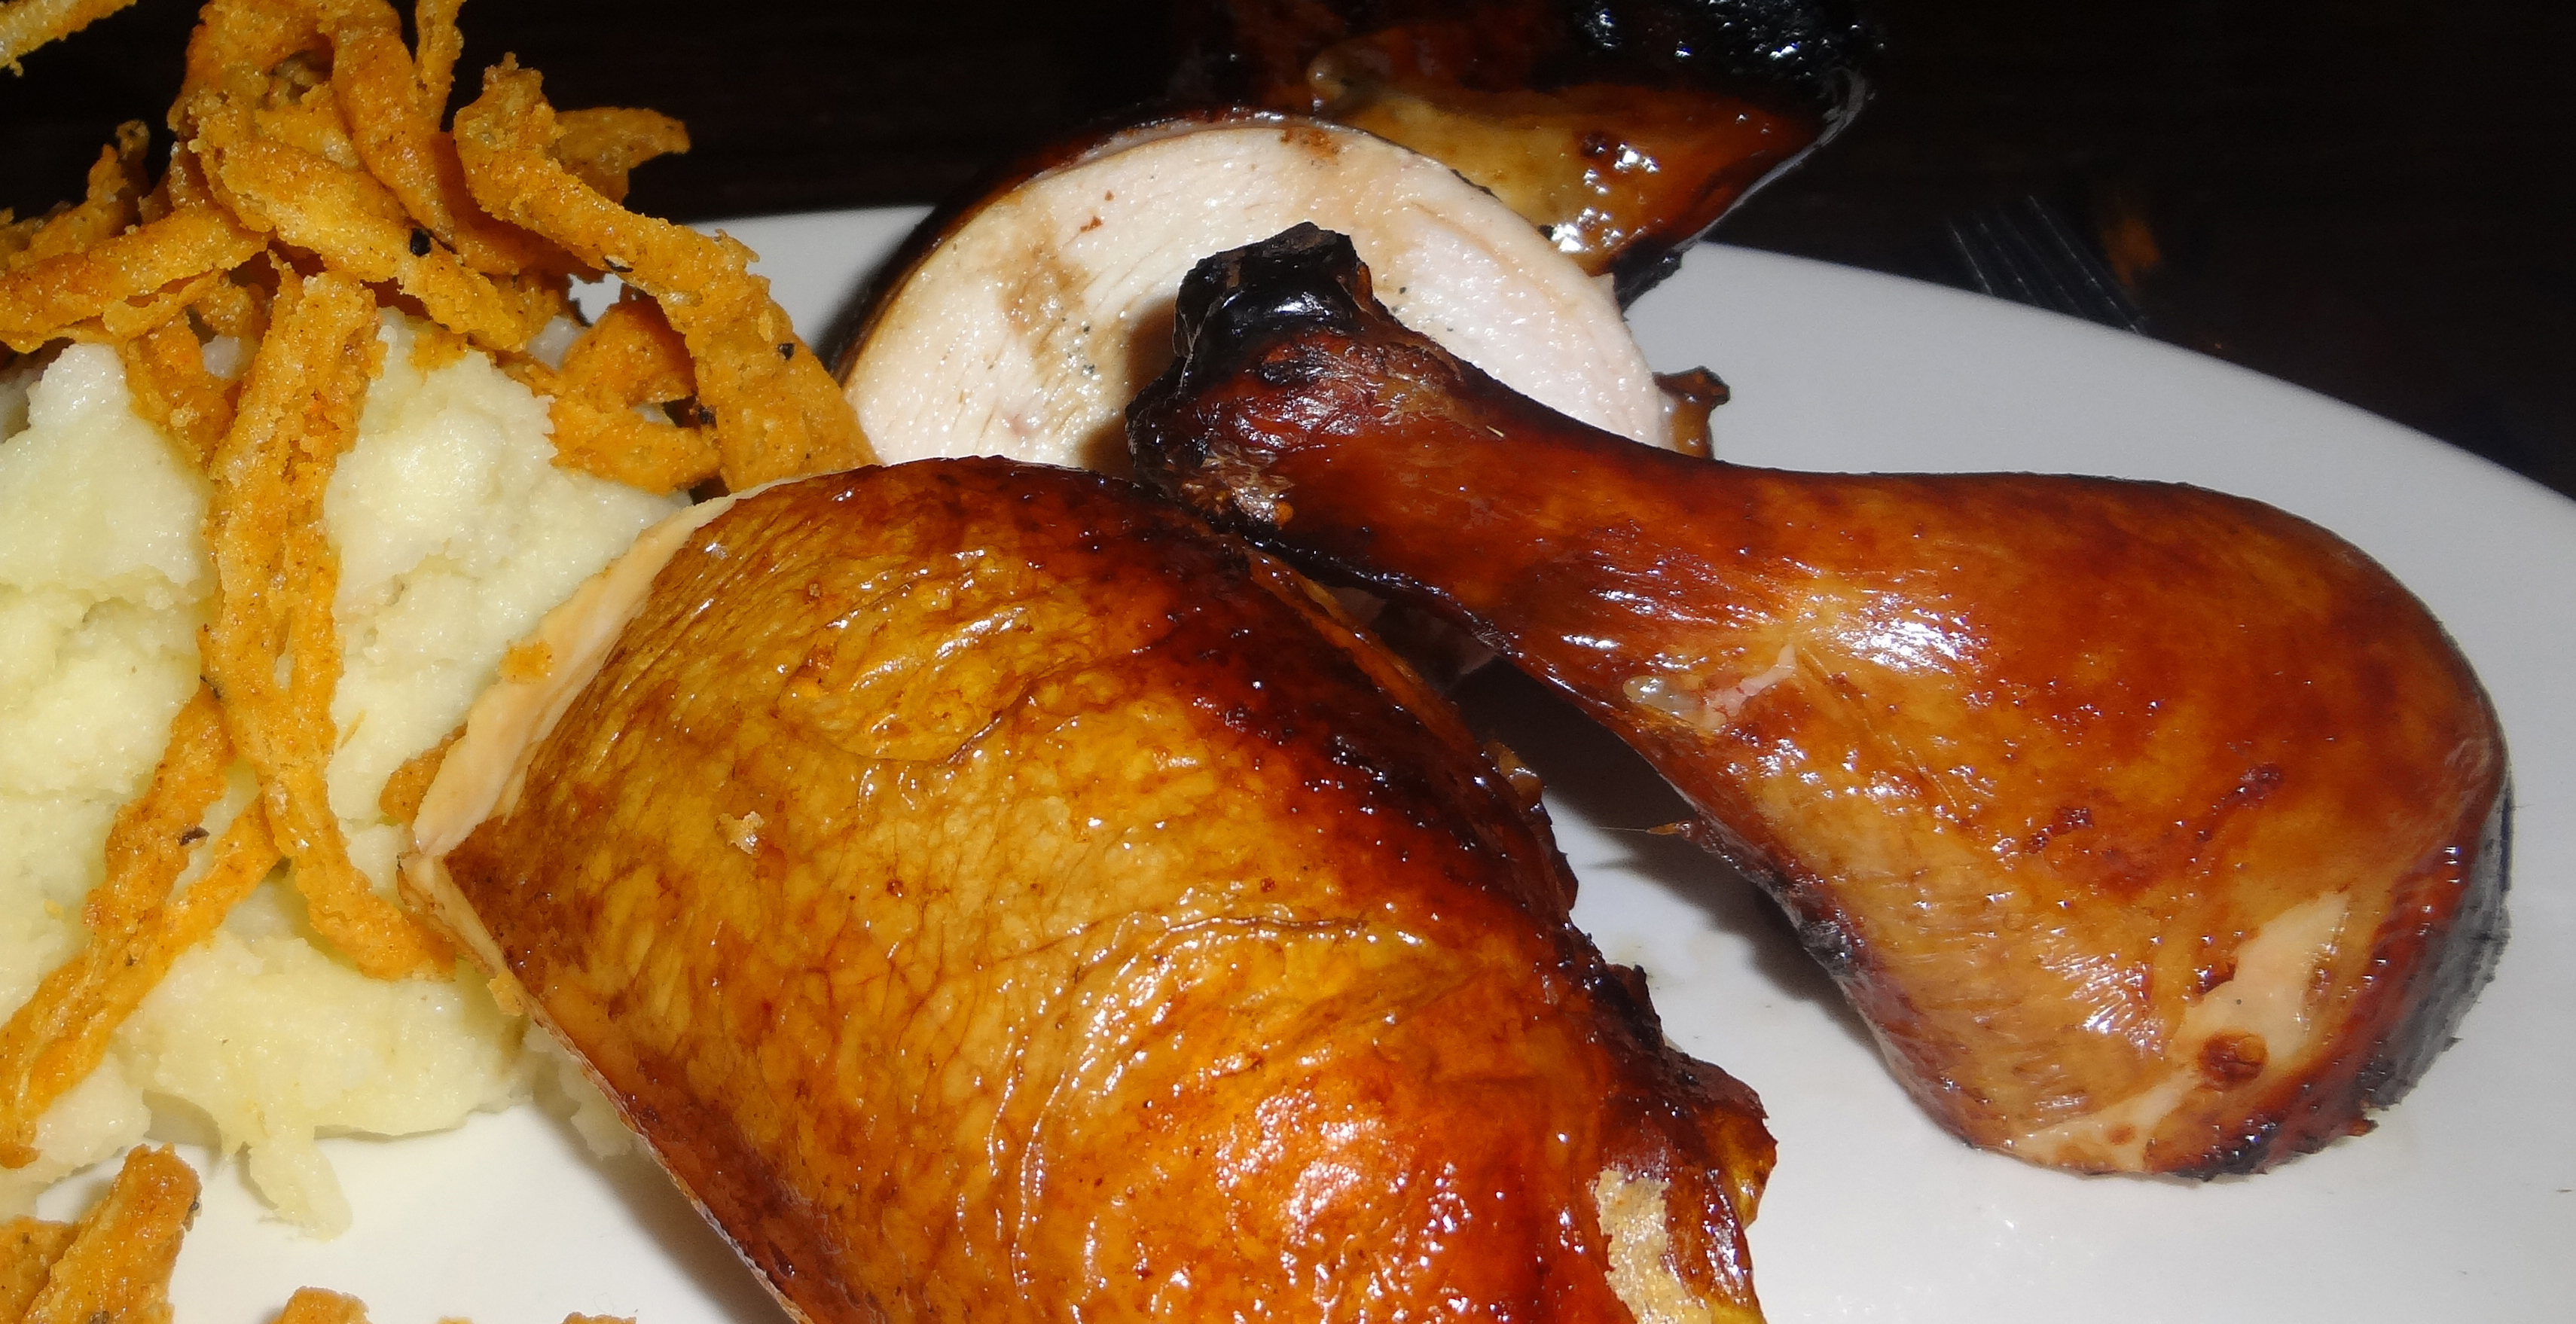 Grilled smoked chicken